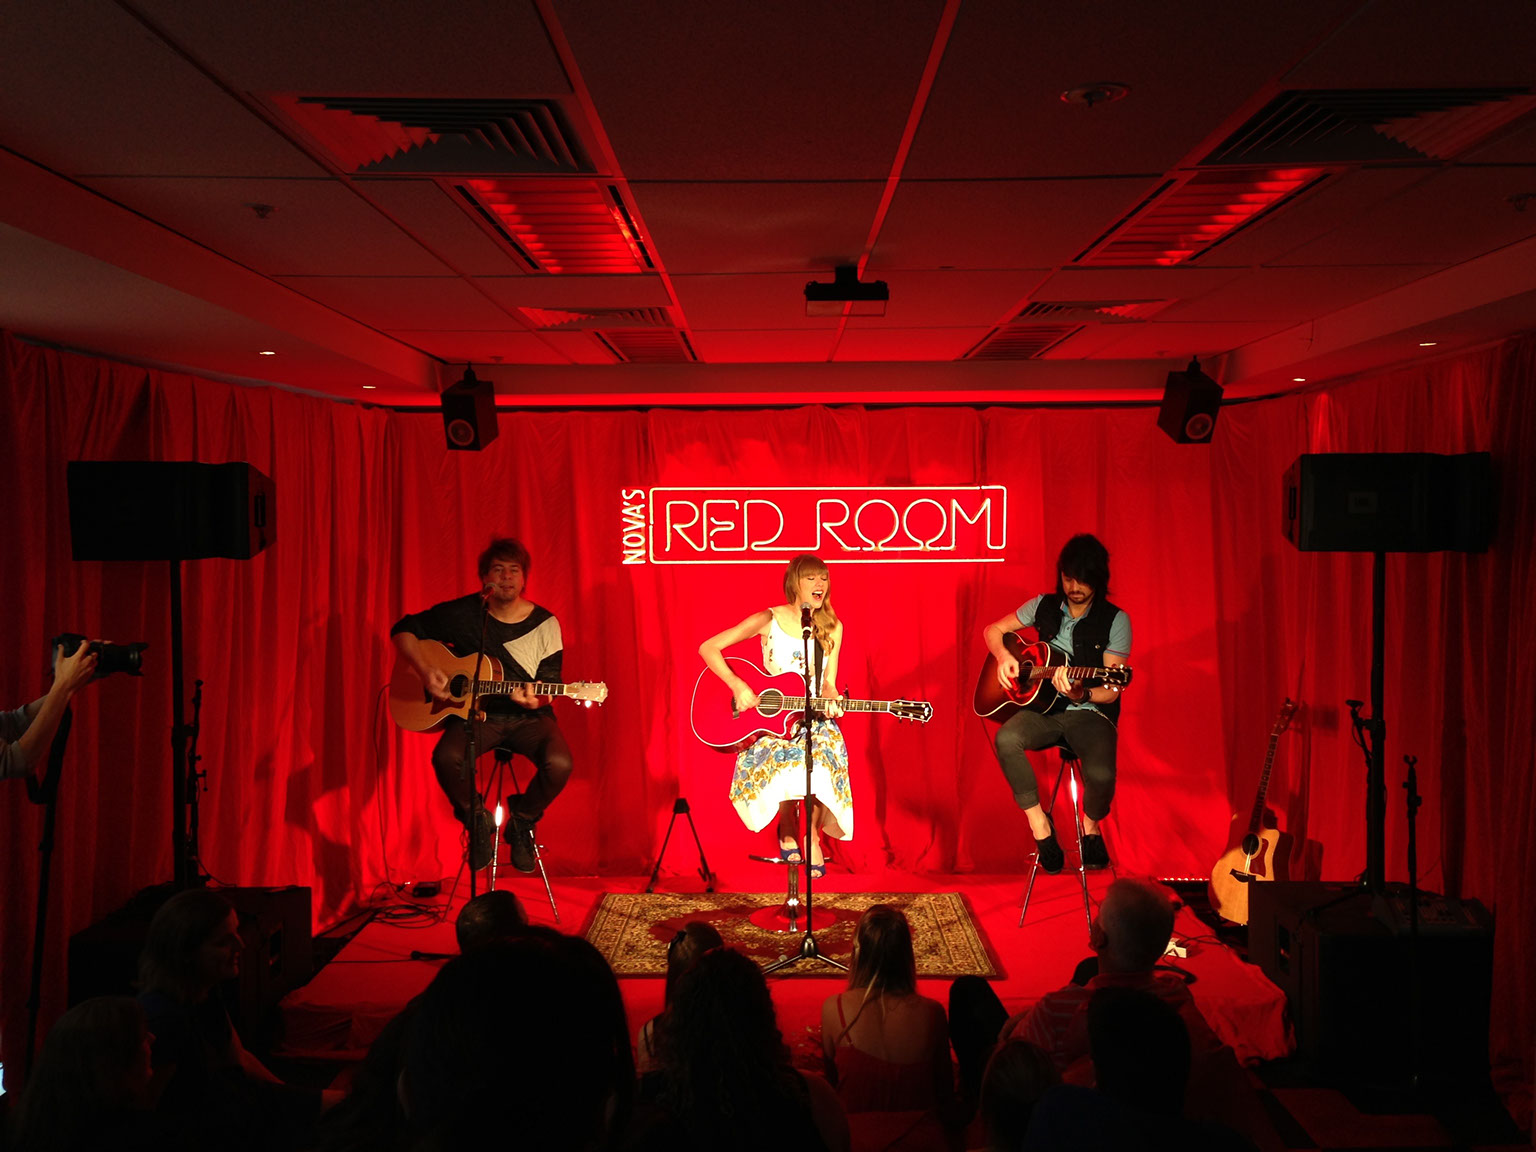 Taylor Swift in Nova FM's Red Room